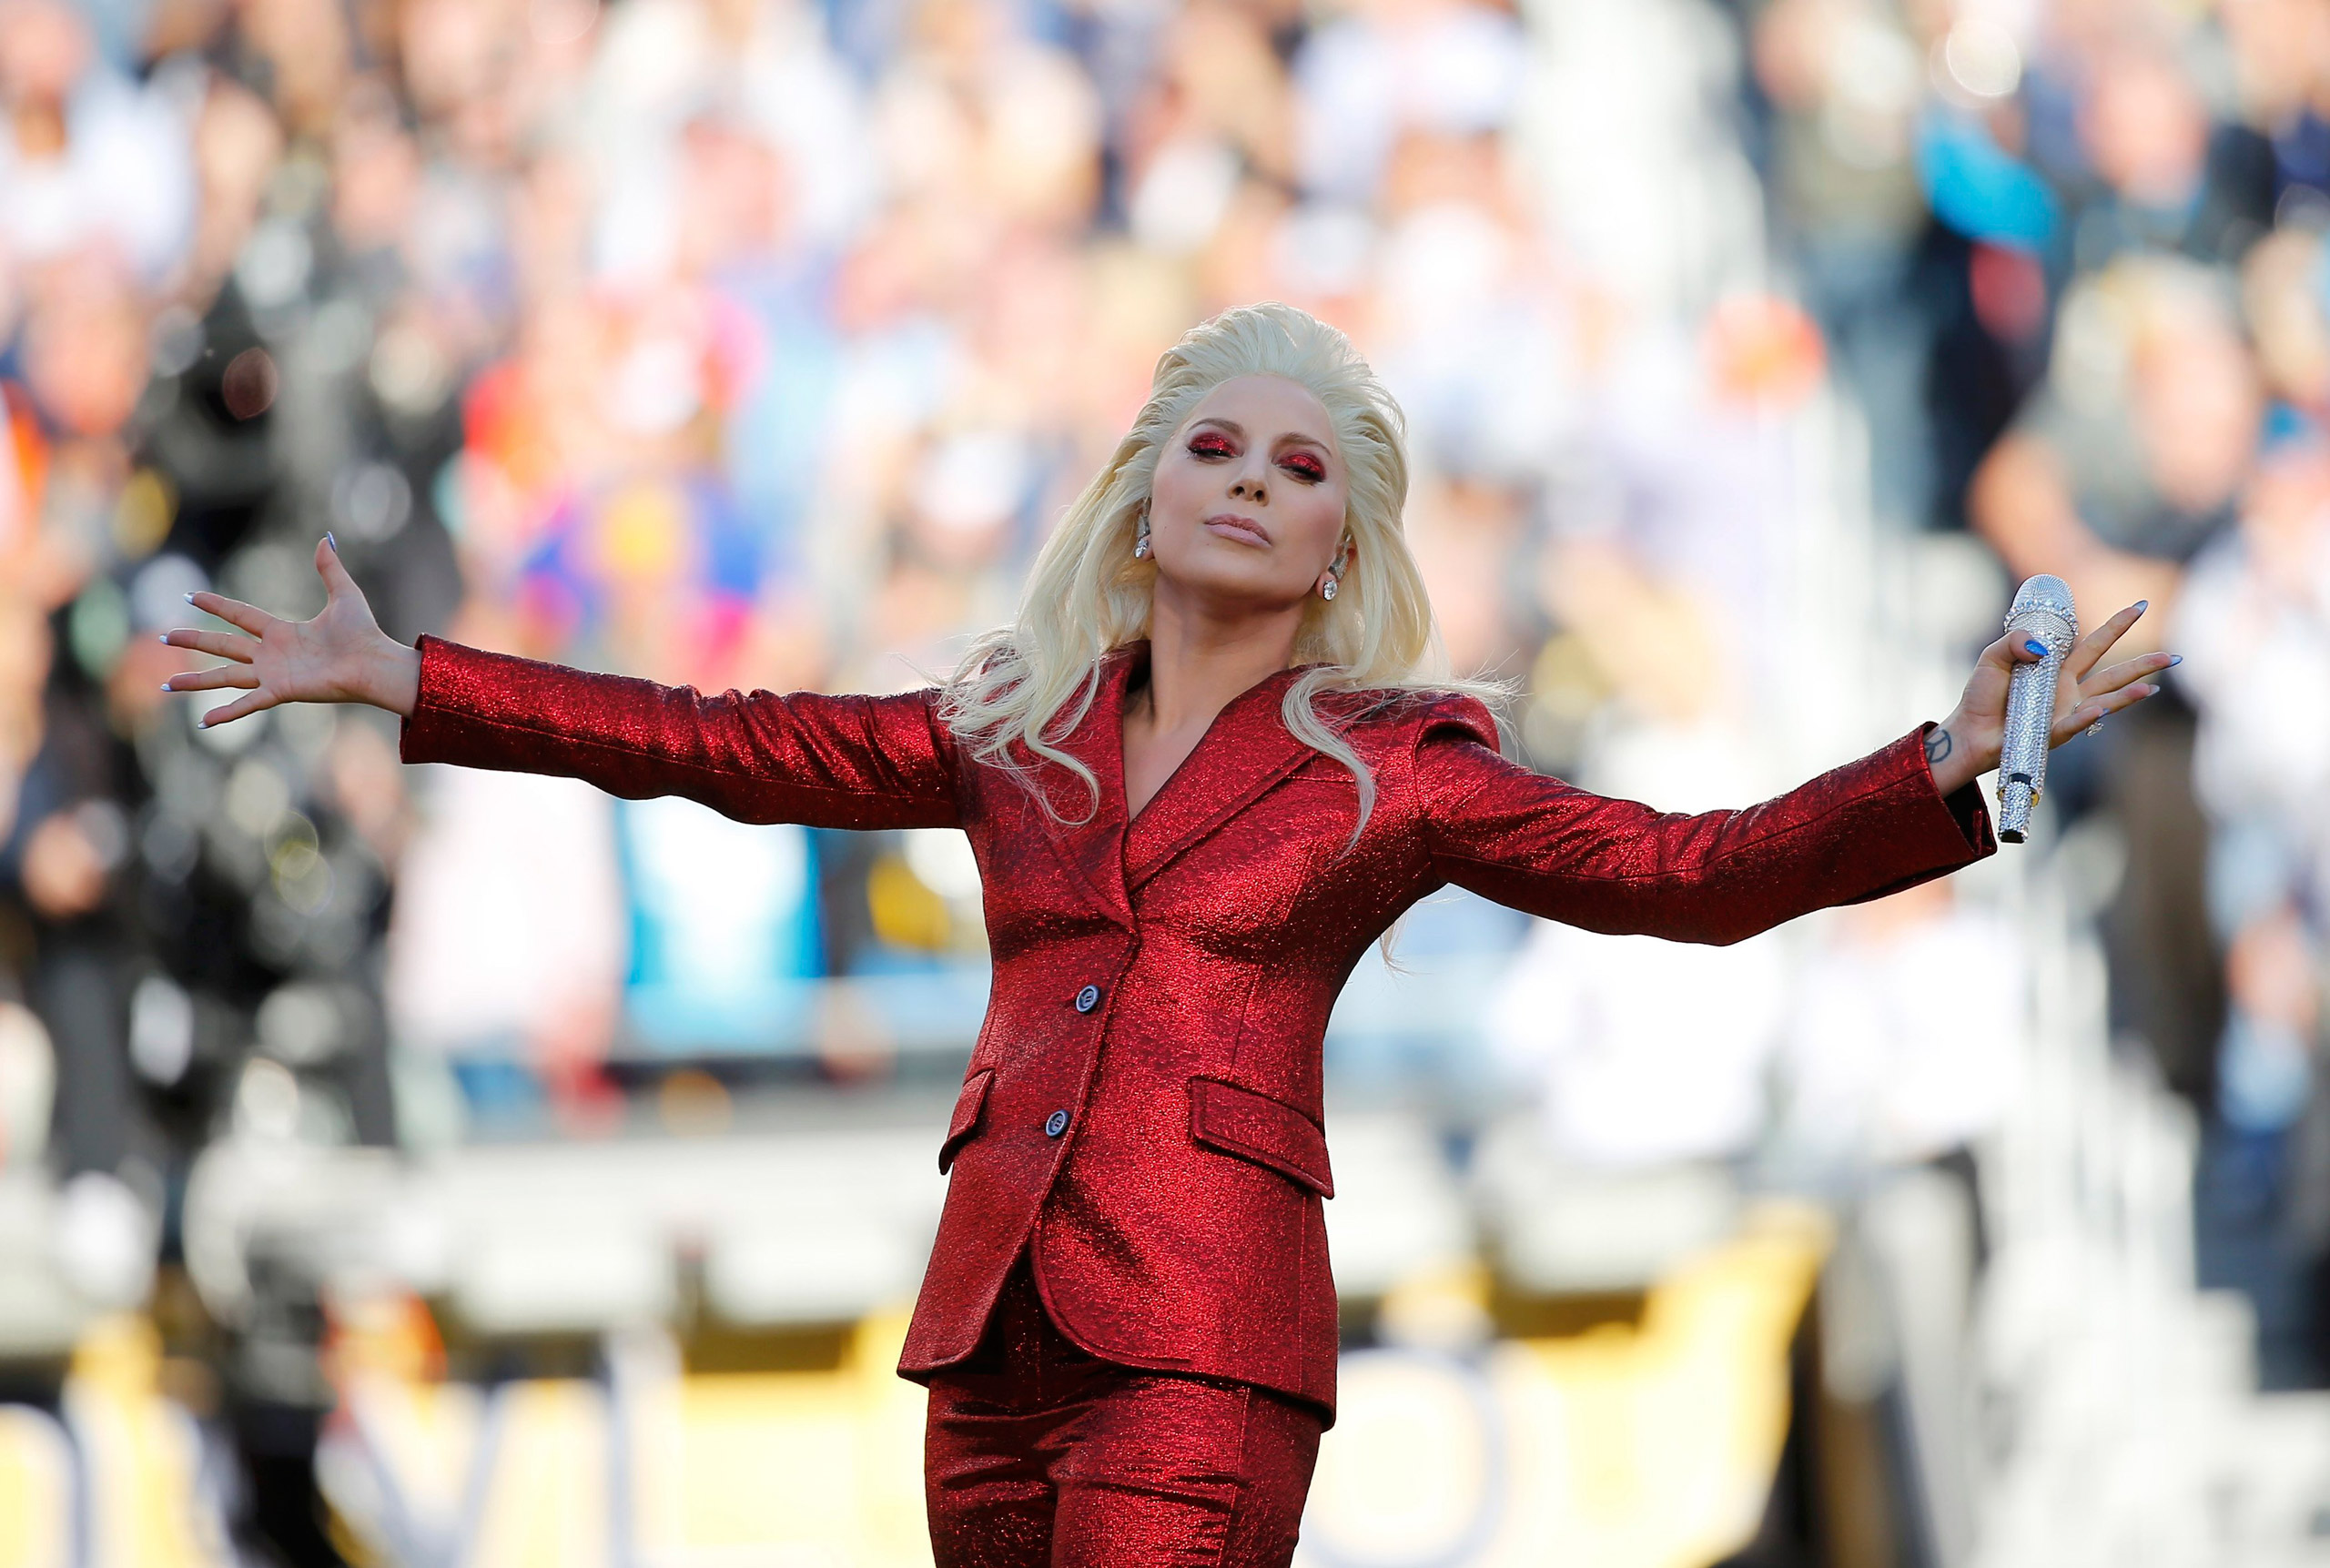 Lady Gaga sings the U.S. National Anthem before the start of the NFL's Super Bowl 50 between the Carolina Panthers and the Denver Broncos in Santa Clara, California Feb. 7, 2016.